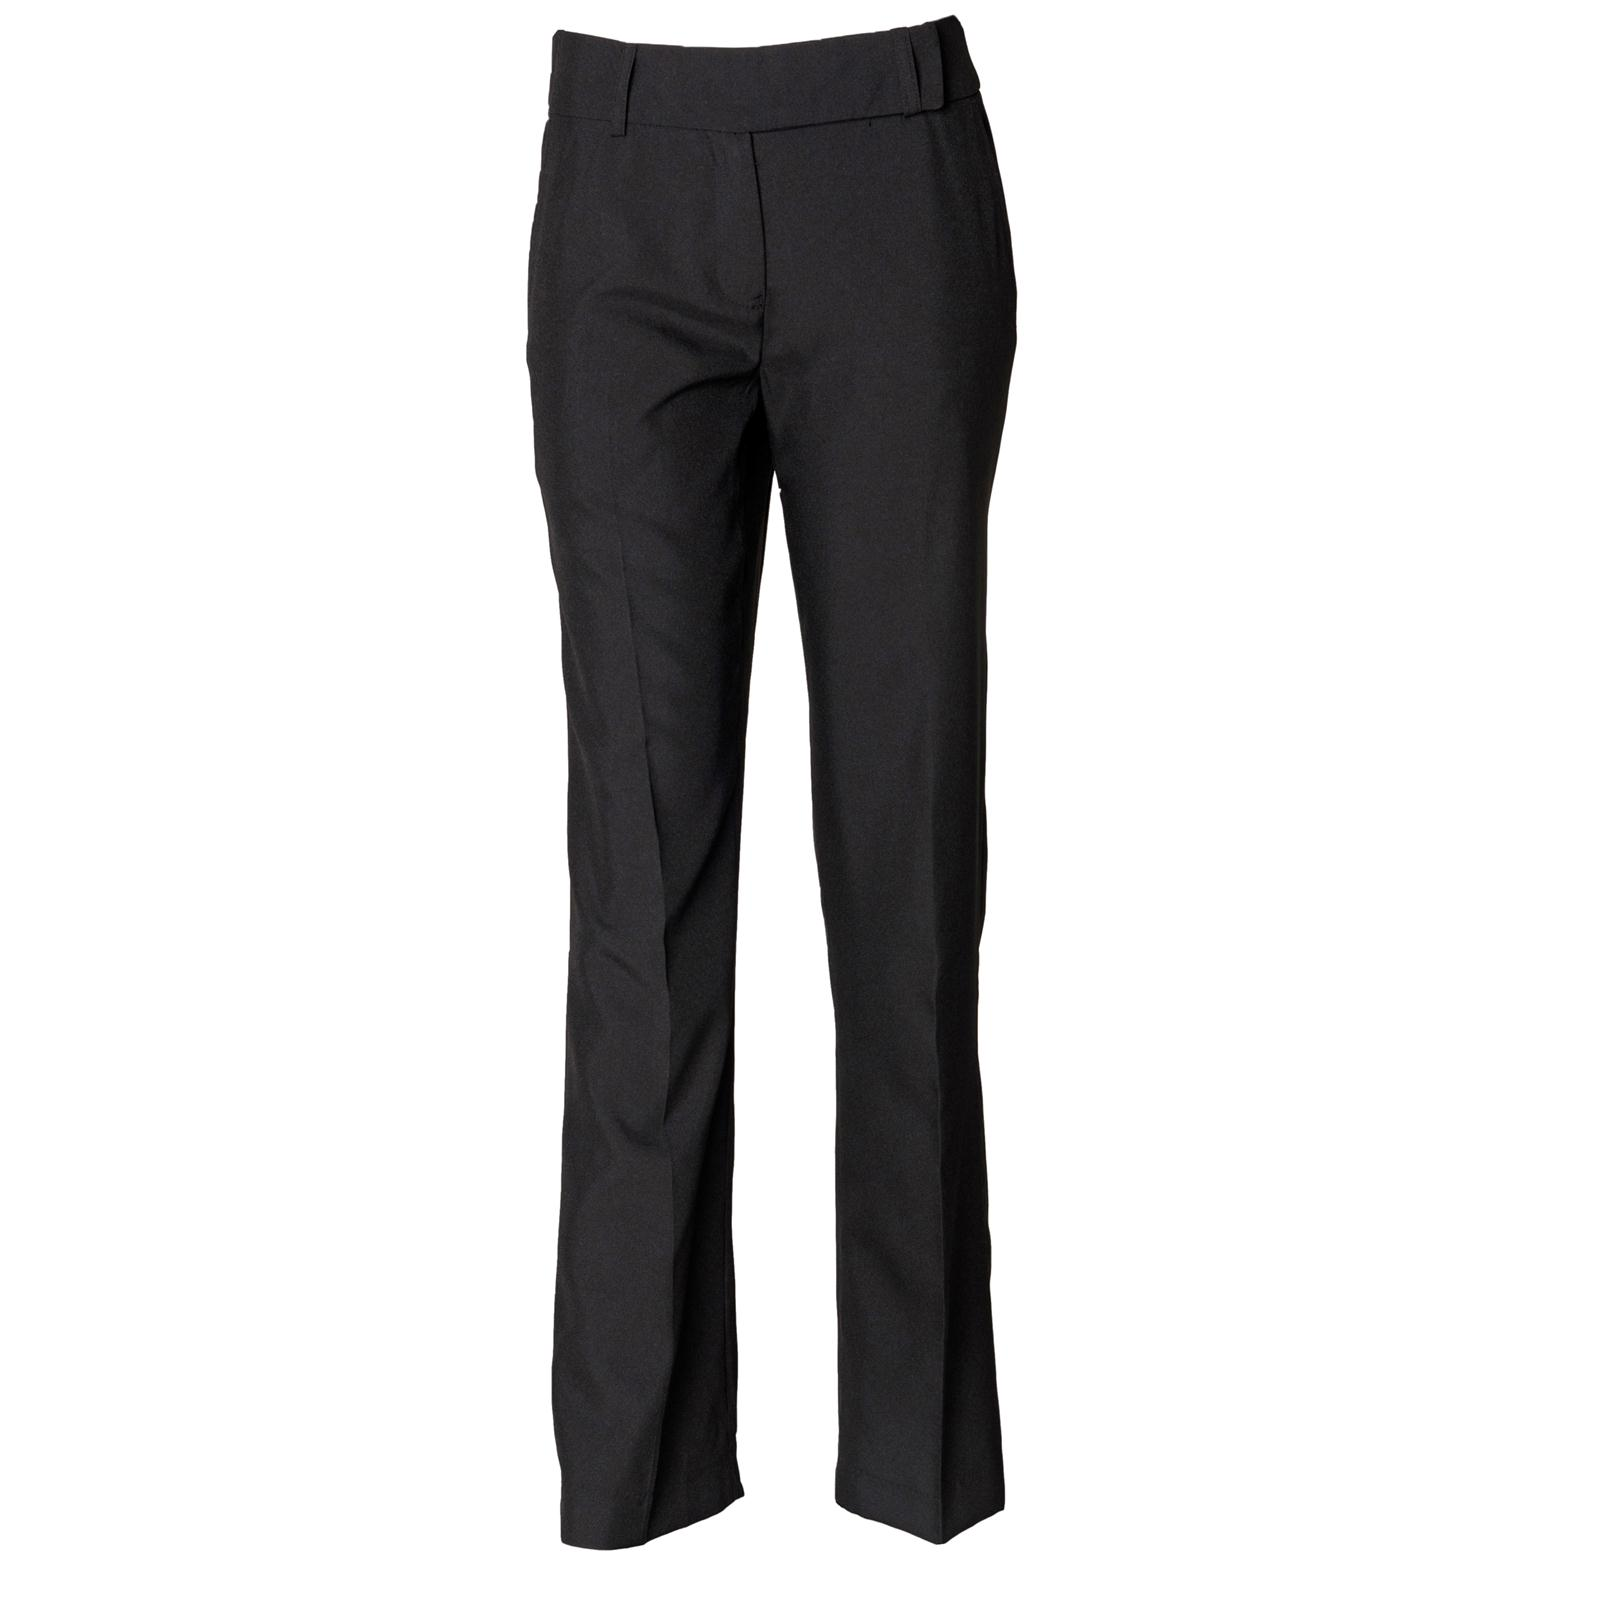 A black trouser is a wardrobe staple, be it for work or a smart casual outing. The seasonal change calls for a more relaxed fit - linen trousers are a key trend this season! The seasonal change calls for a more relaxed fit - linen trousers are a key trend this season!